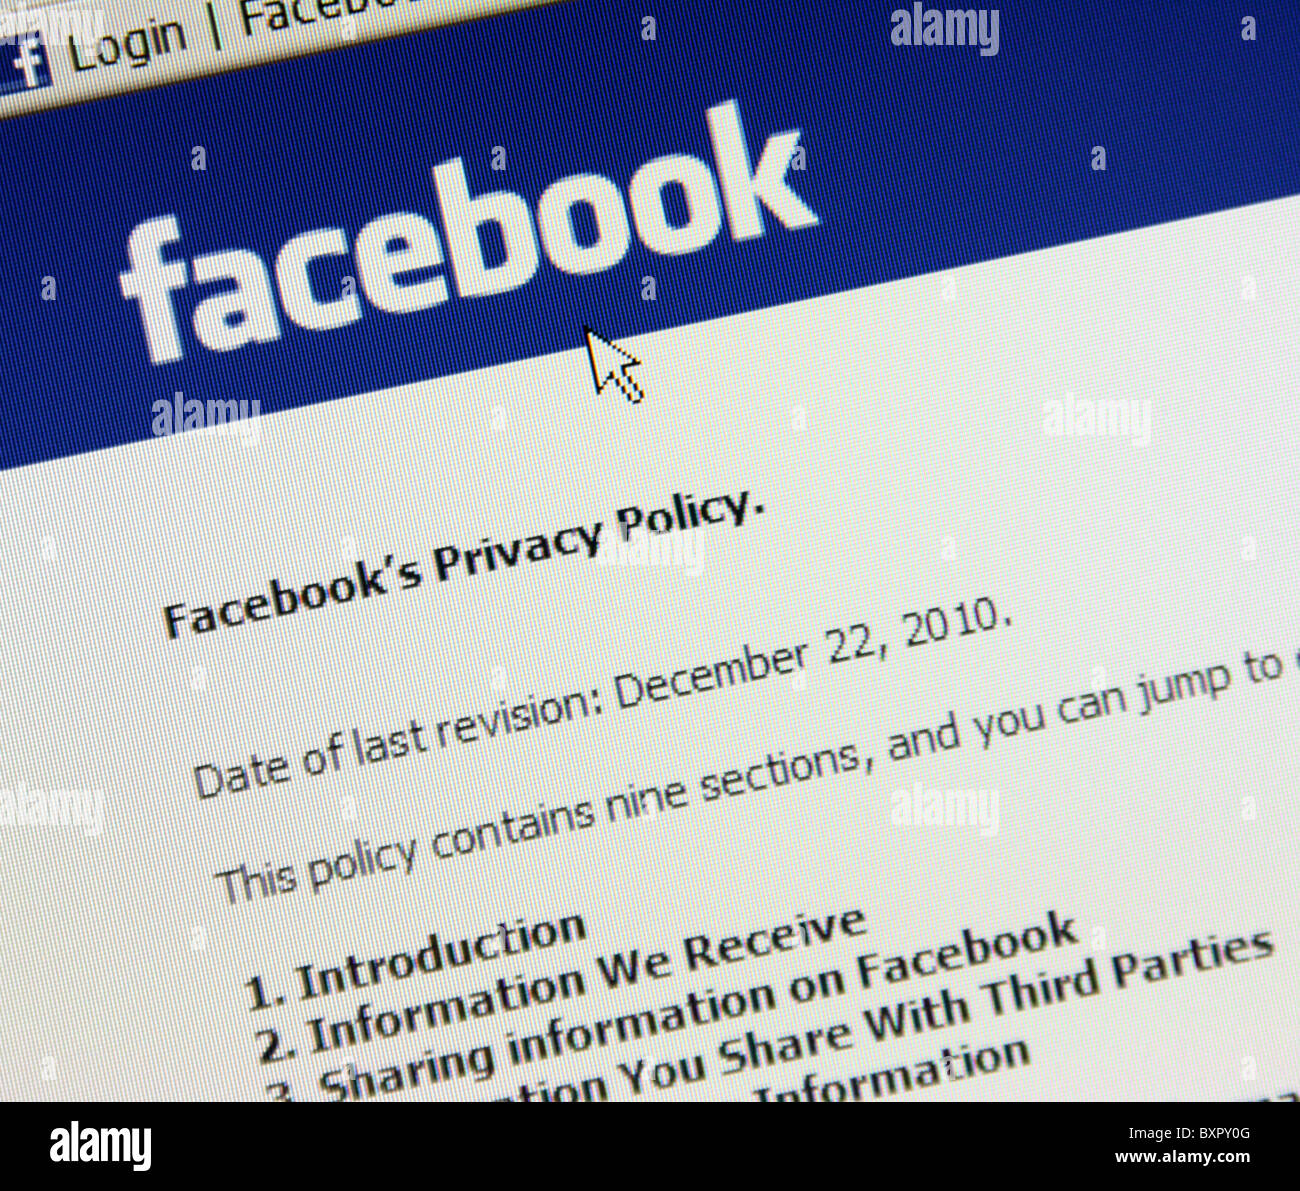 Politique de confidentialité de Facebook 2010 Photo Stock